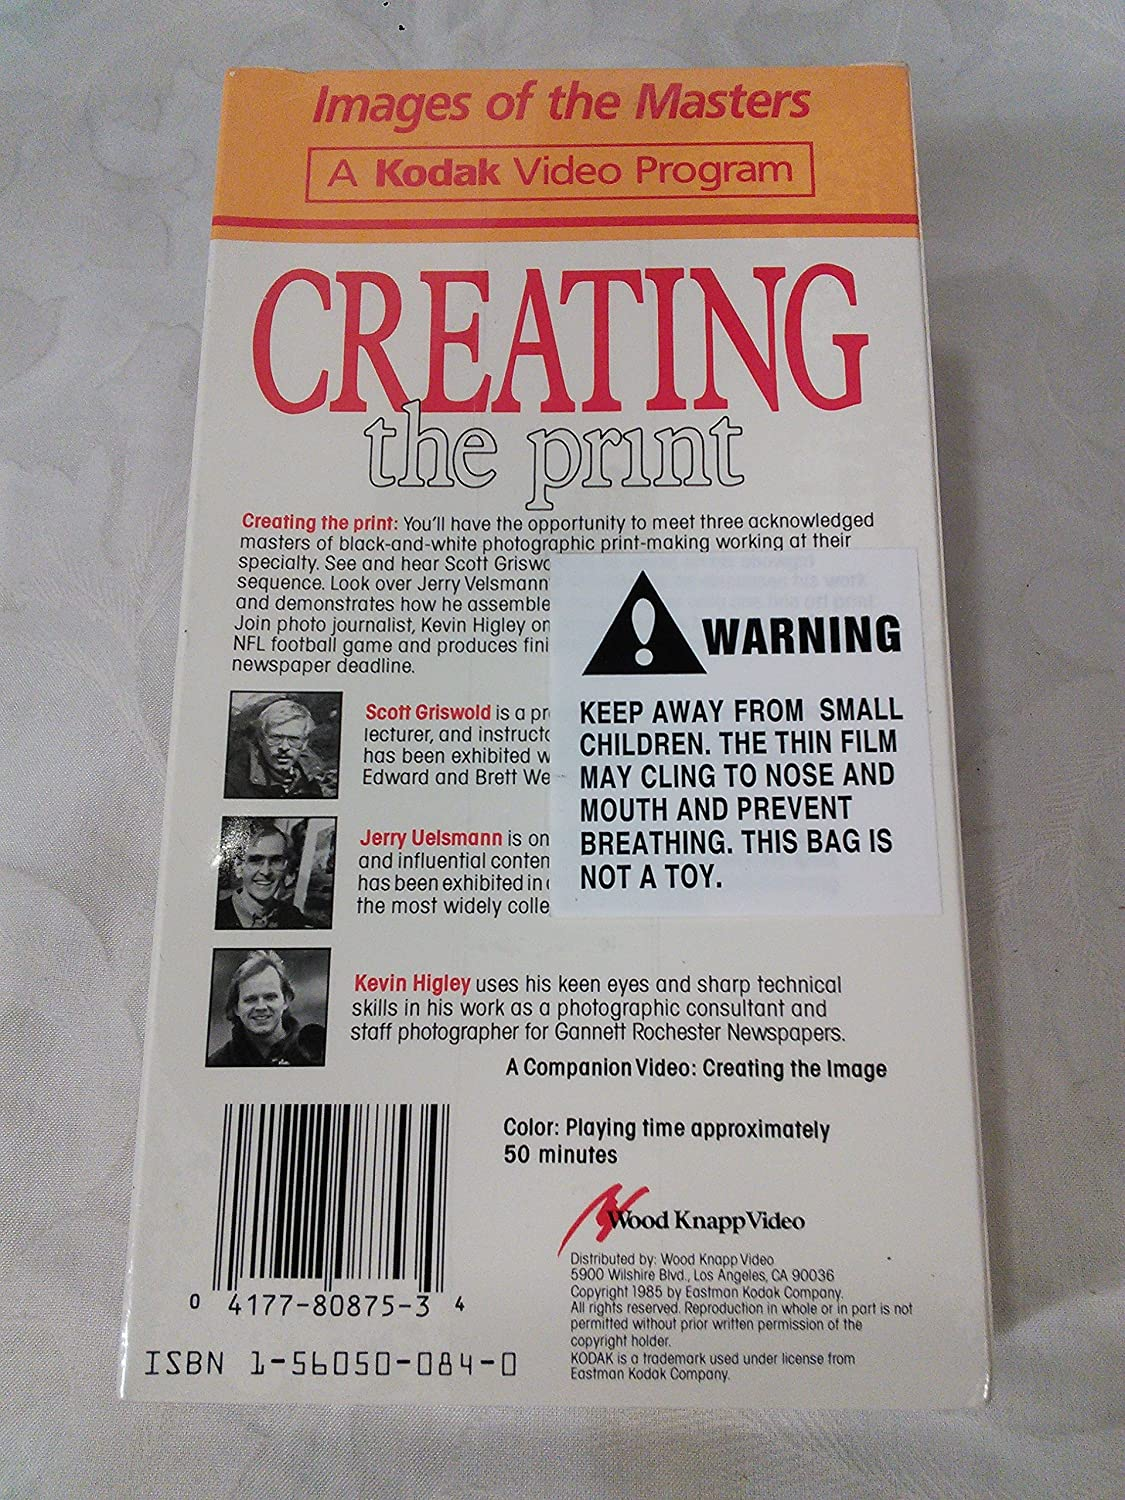 Amazon.com: Images of the Masters: Creating the Print [VHS]: Kodak Video: Movies & TV